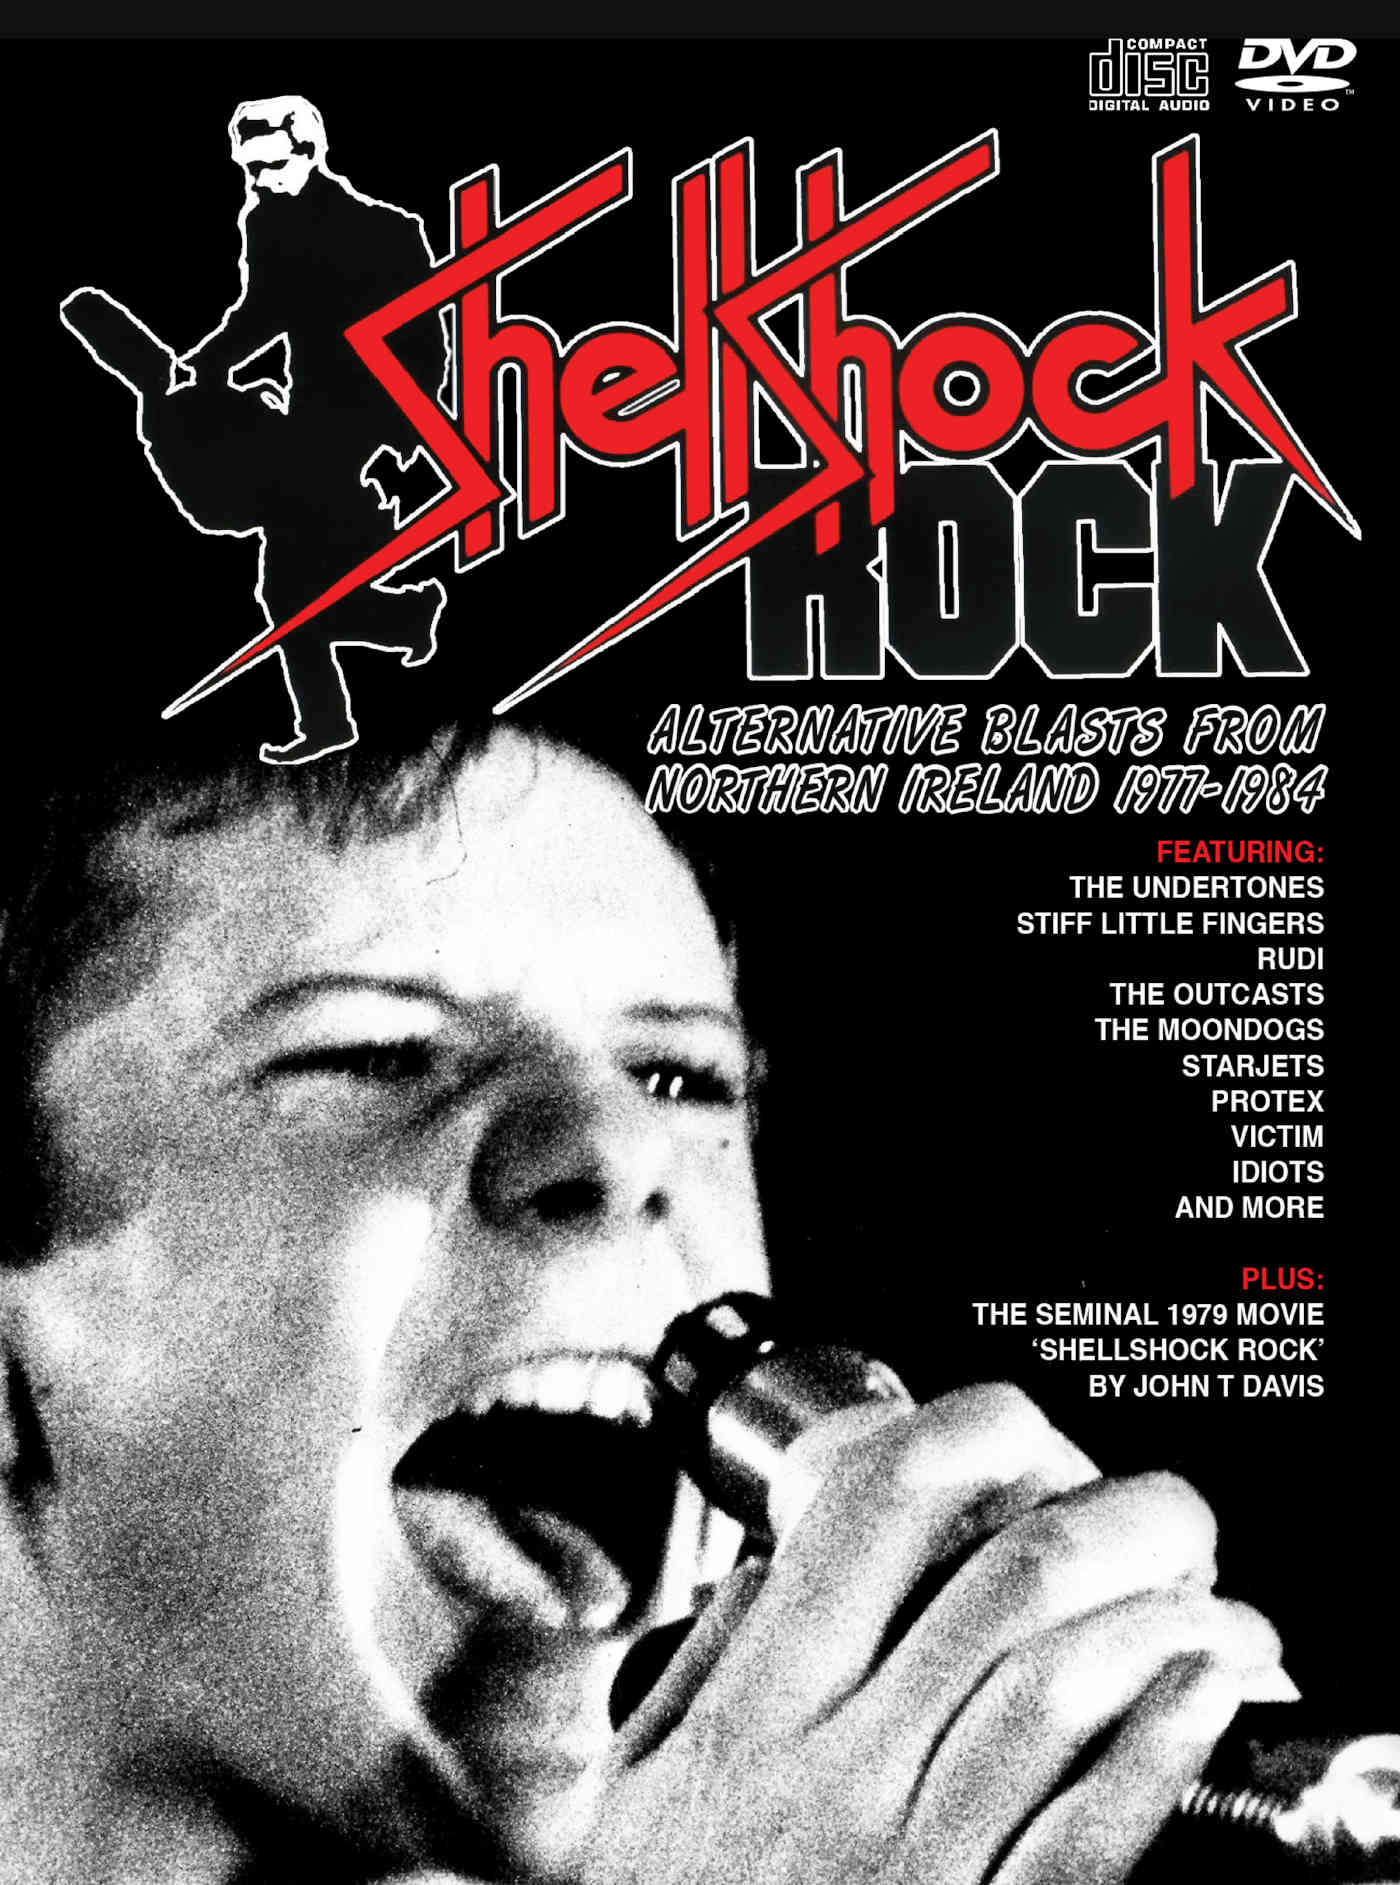 News – Shellshock Rock – Alternative Blasts From Northern Ireland 1977-1984